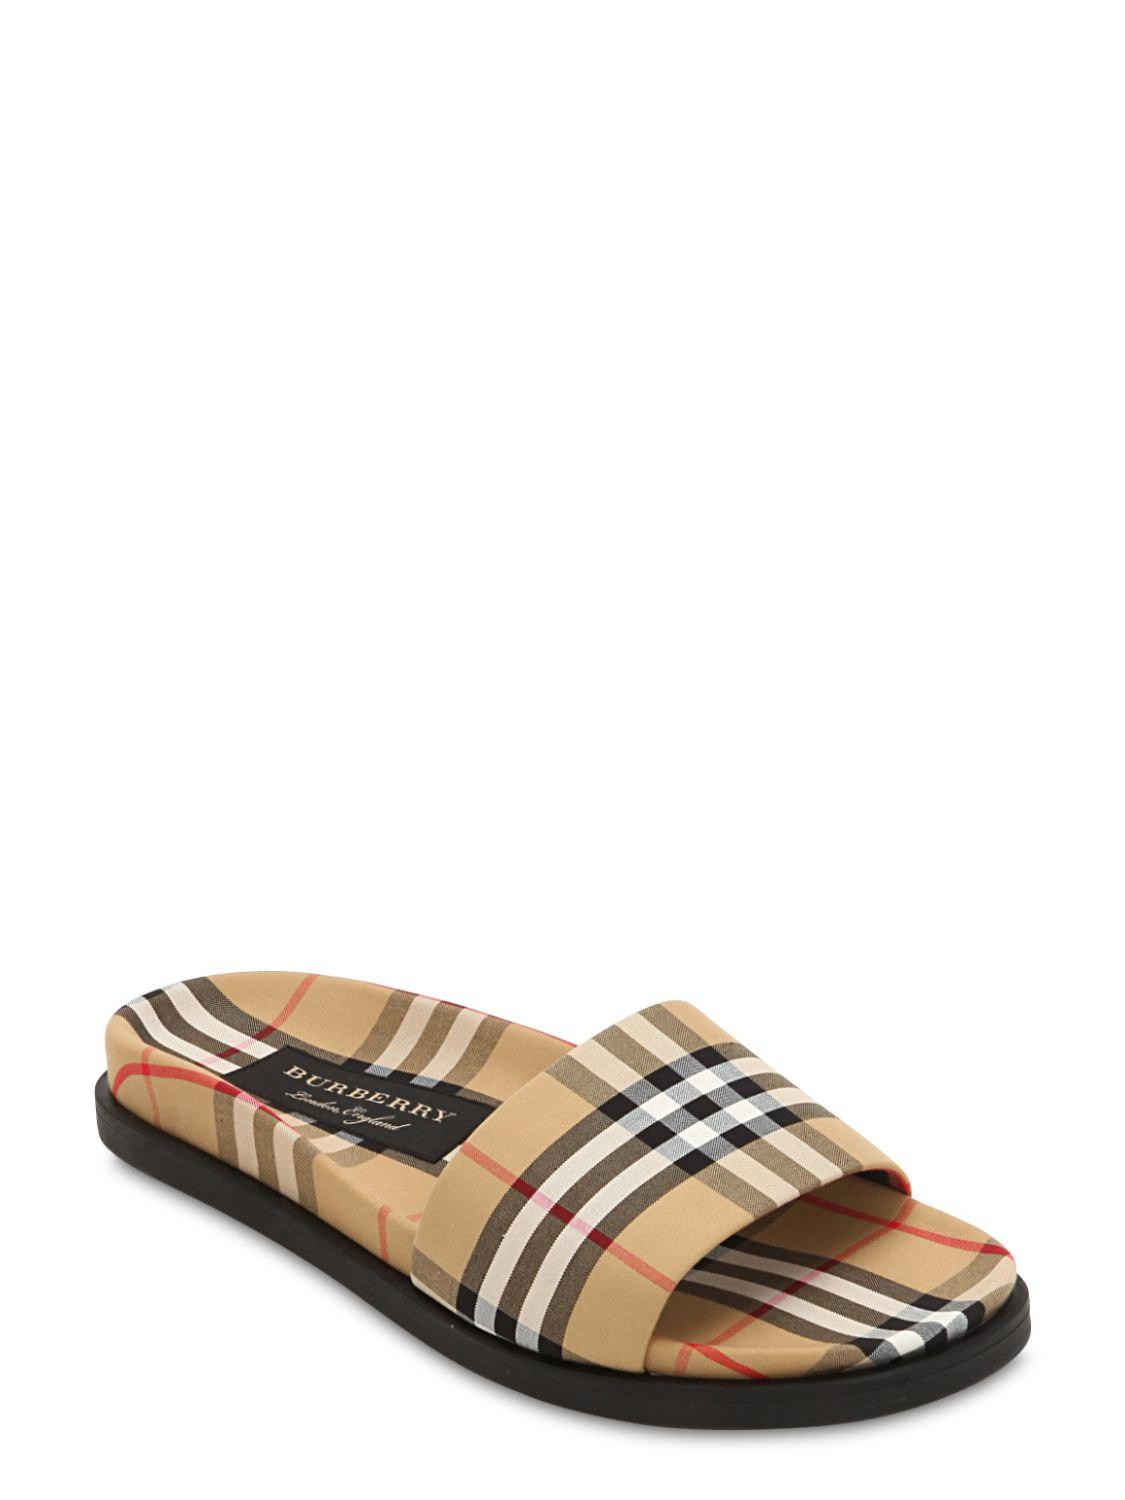 d8e779b051f8cd Burberry Beige Check Ashmore Slides for Men - Save 9% - Lyst